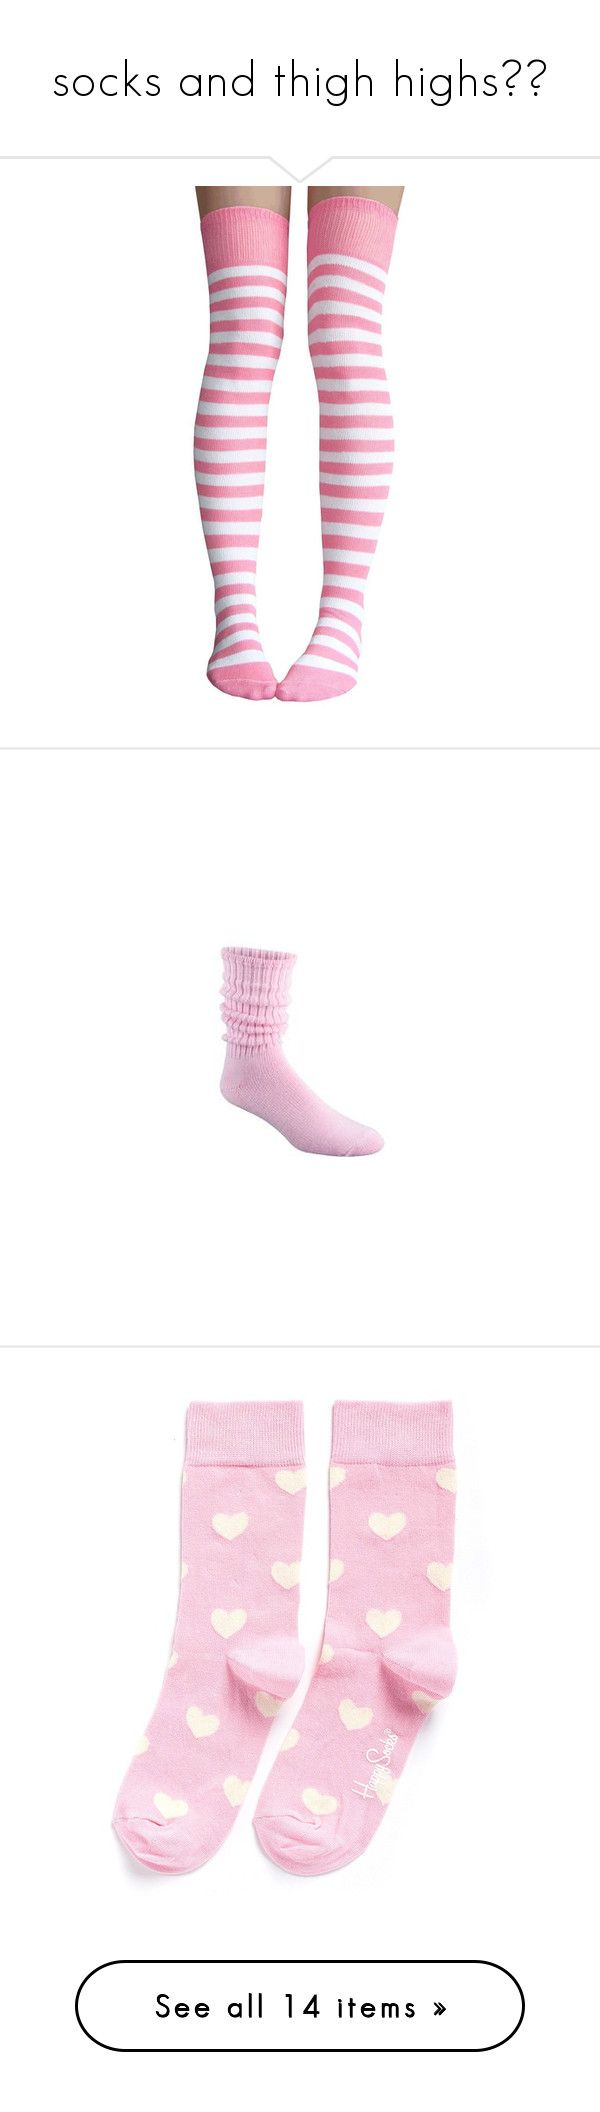 """""""socks and thigh highs💕💕"""" by ms-creepypastajr ❤ liked on Polyvore featuring intimates, hosiery, socks, striped thigh high socks, pink striped socks, pink socks, wide socks, stripe thigh high socks, slouch socks and 80s socks"""